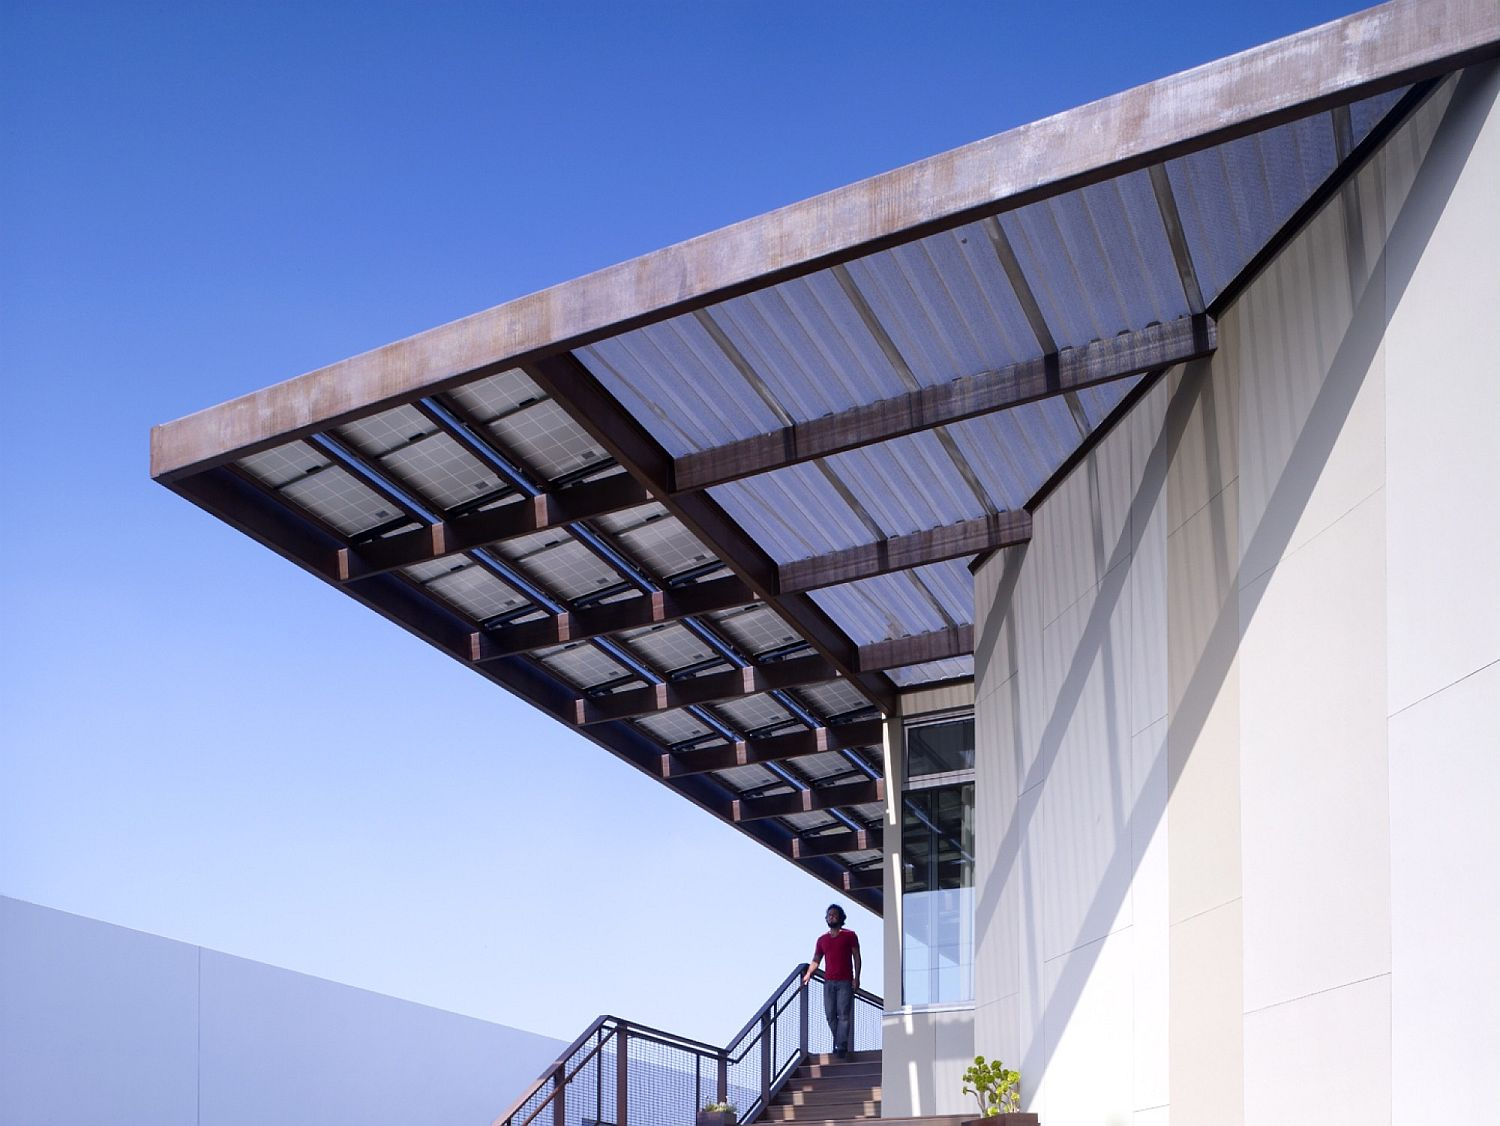 Solar-panels-offer-natural-shade-even-while-turning-the-home-into-an-energy-neutral-setting